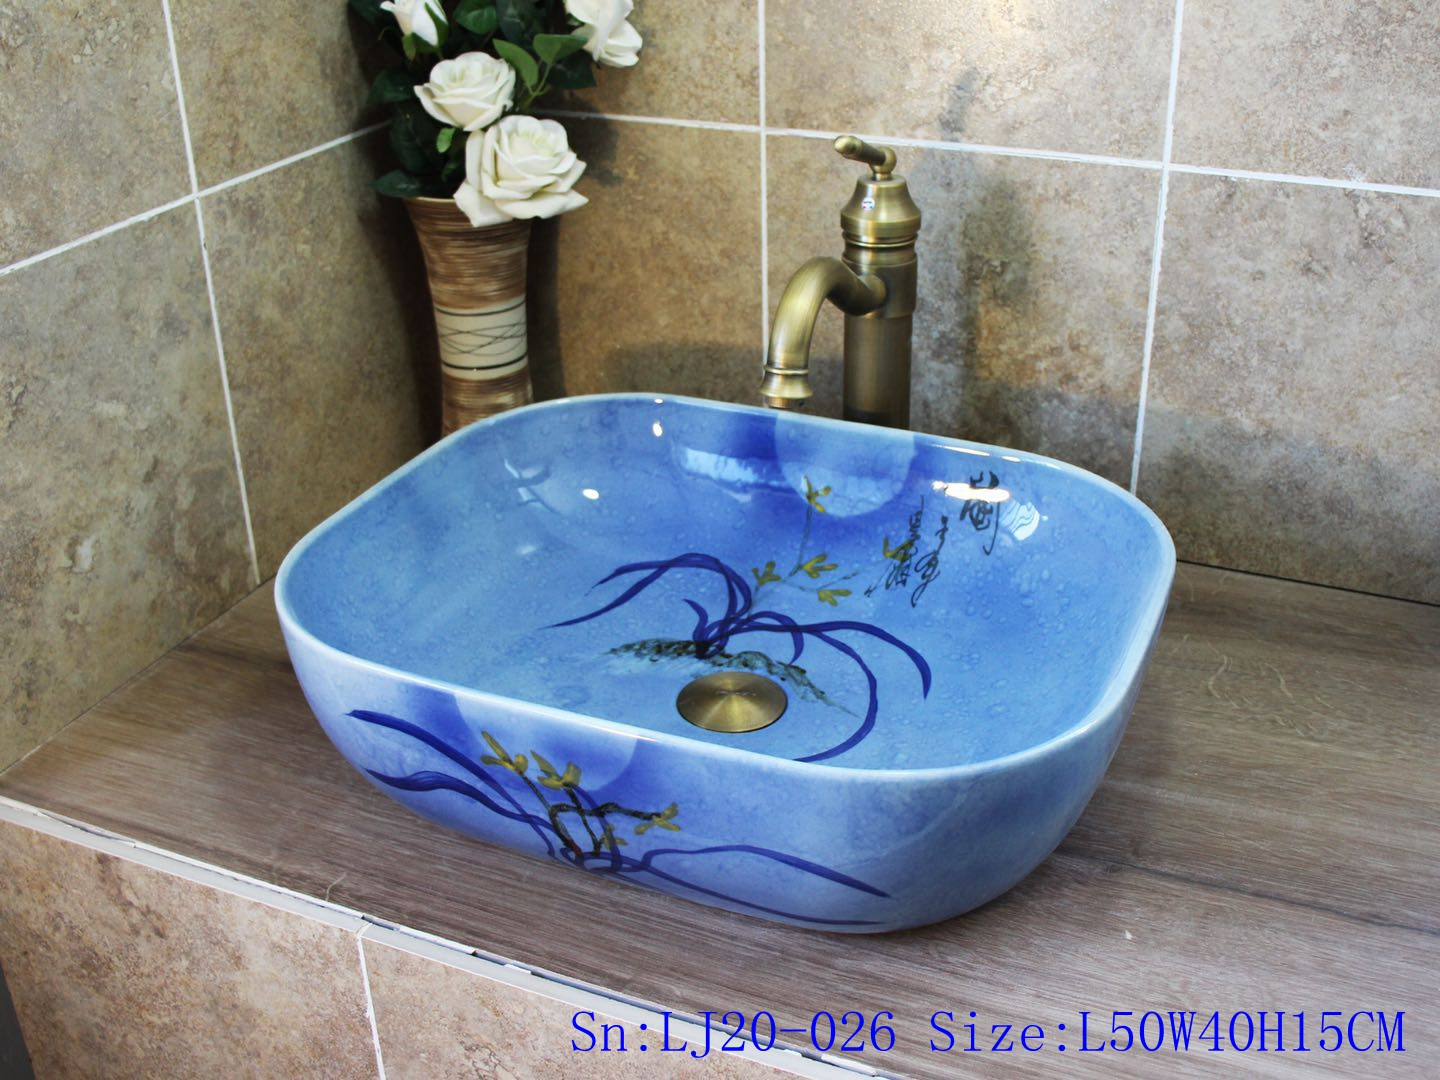 LJ20-026 Pure hand painting blue flowers wash sink